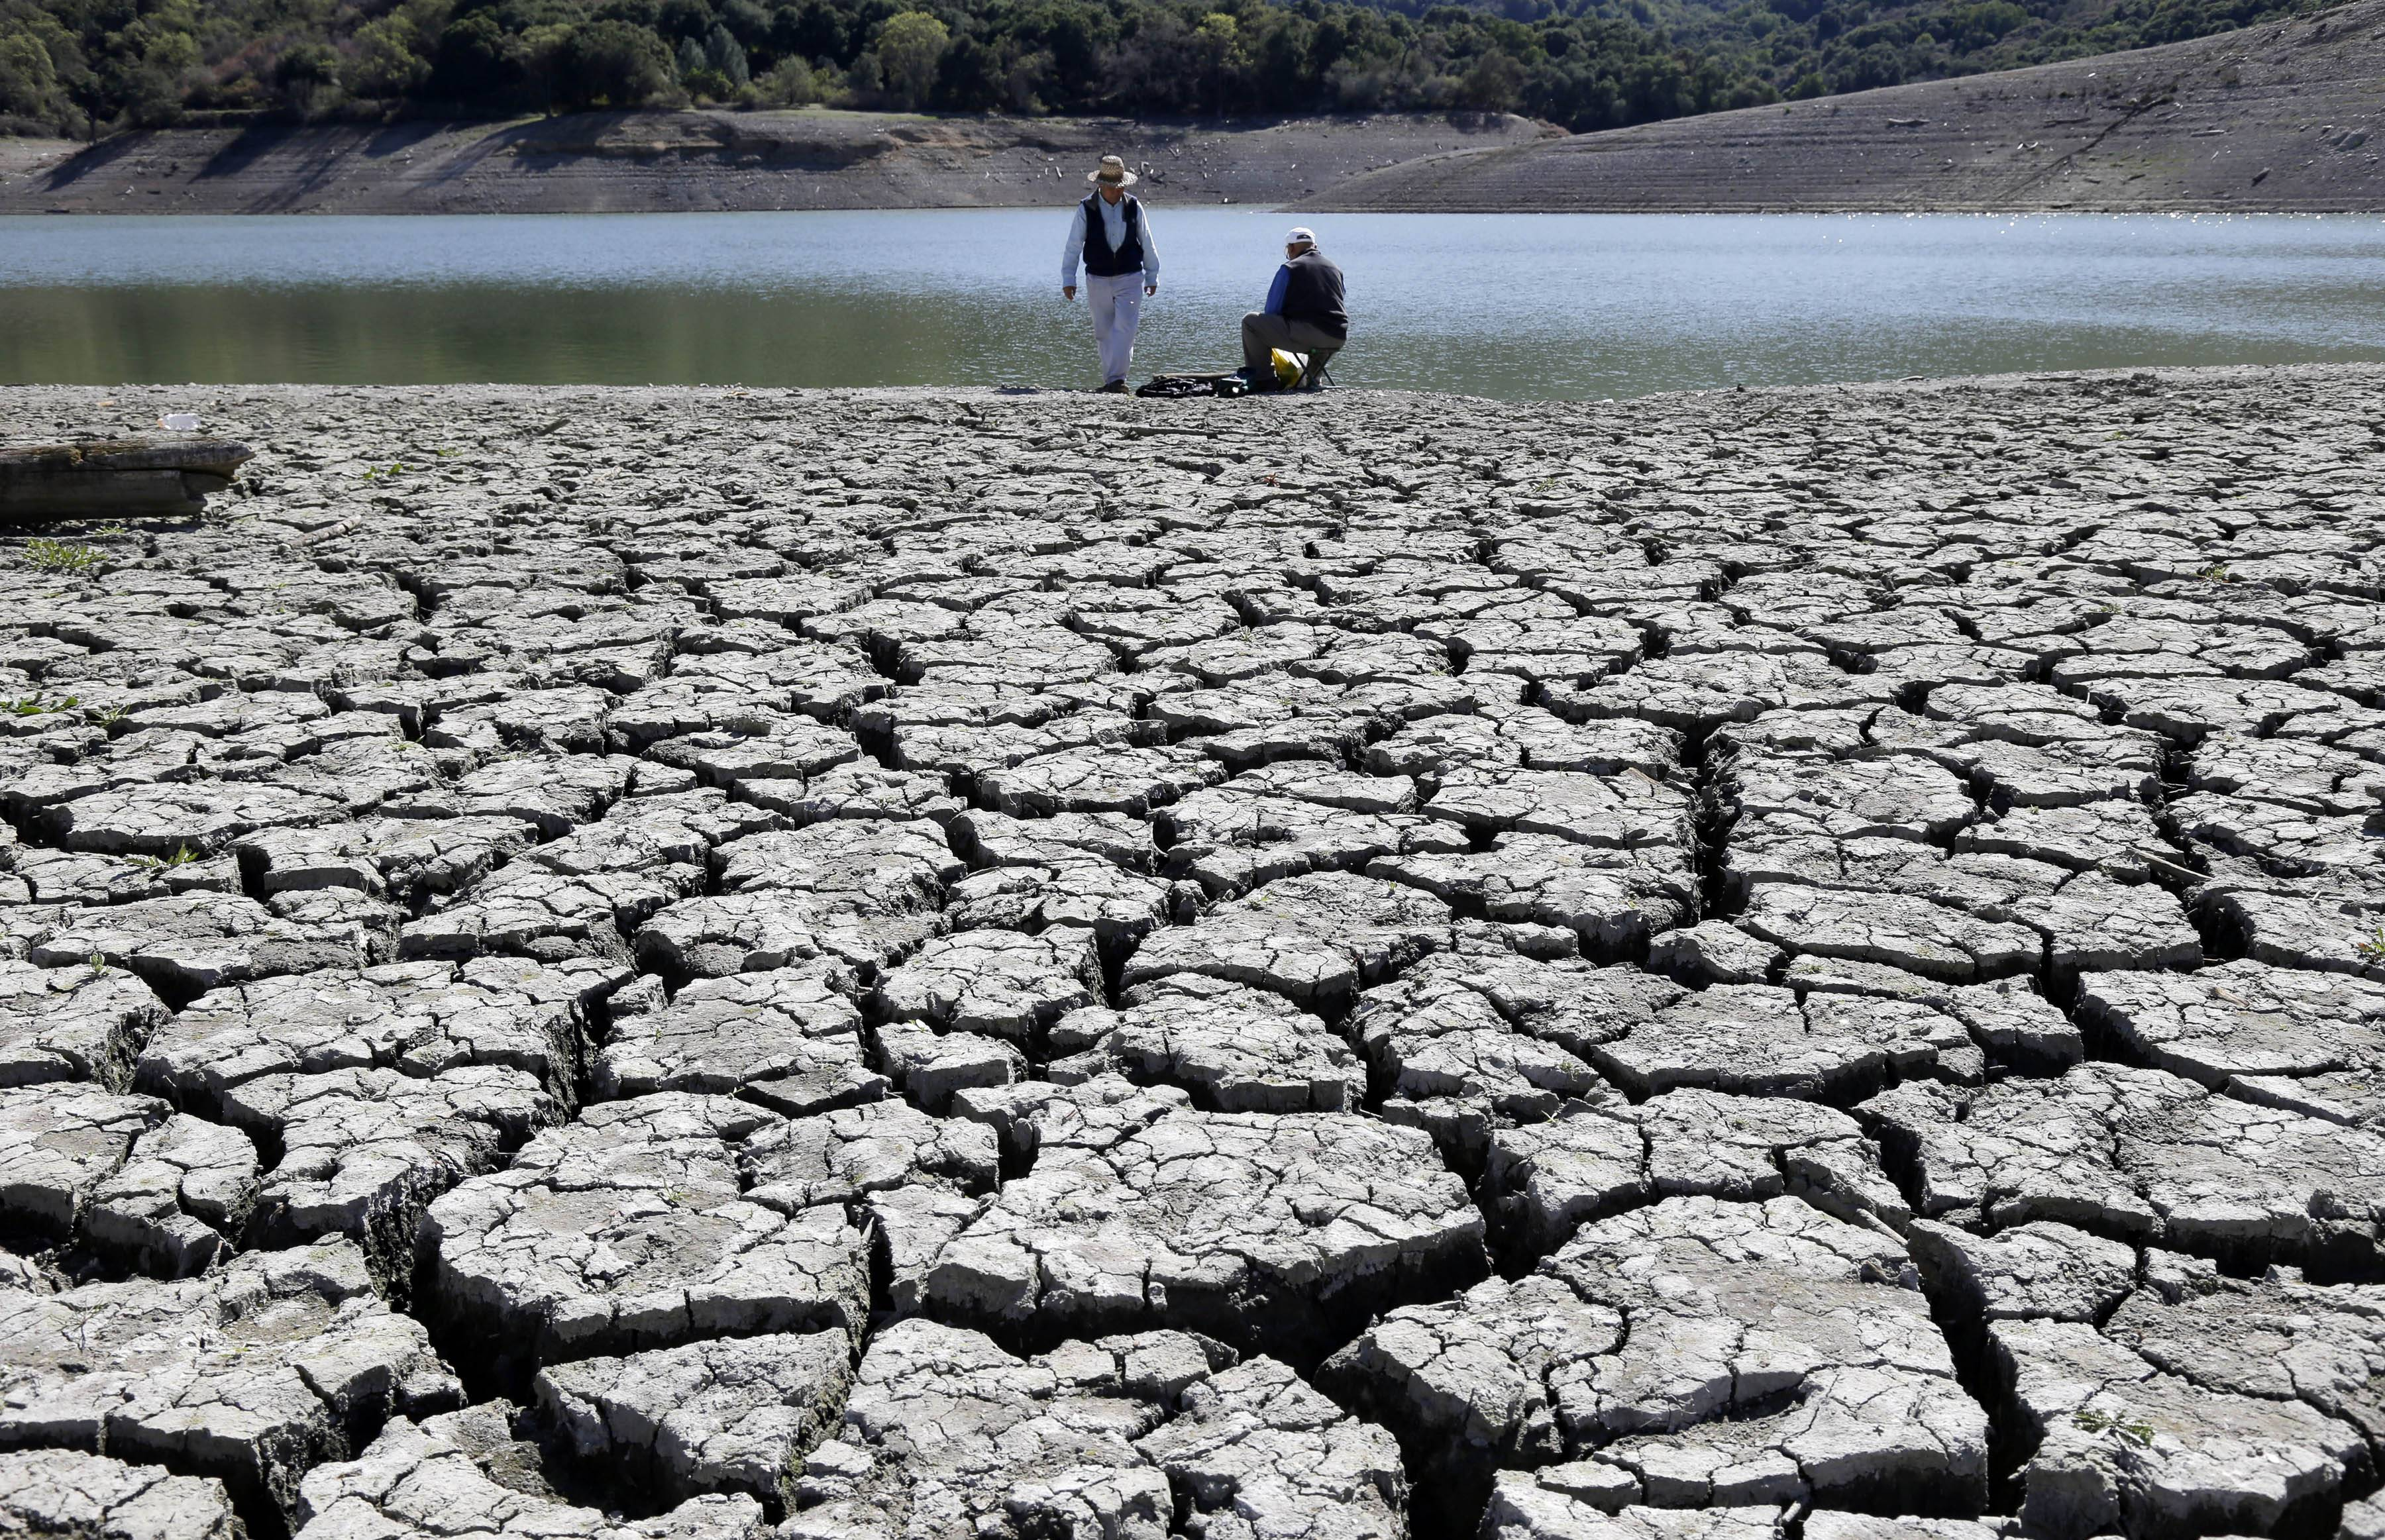 Cracks in the dry bed of the Stevens Creek Reservoir in Cupertino, Calif. The Obama administration is more certain than ever that global warming is changing Americans' daily lives and will worsen -- conclusions that scientists detail in a massive federal report released Tuesday.